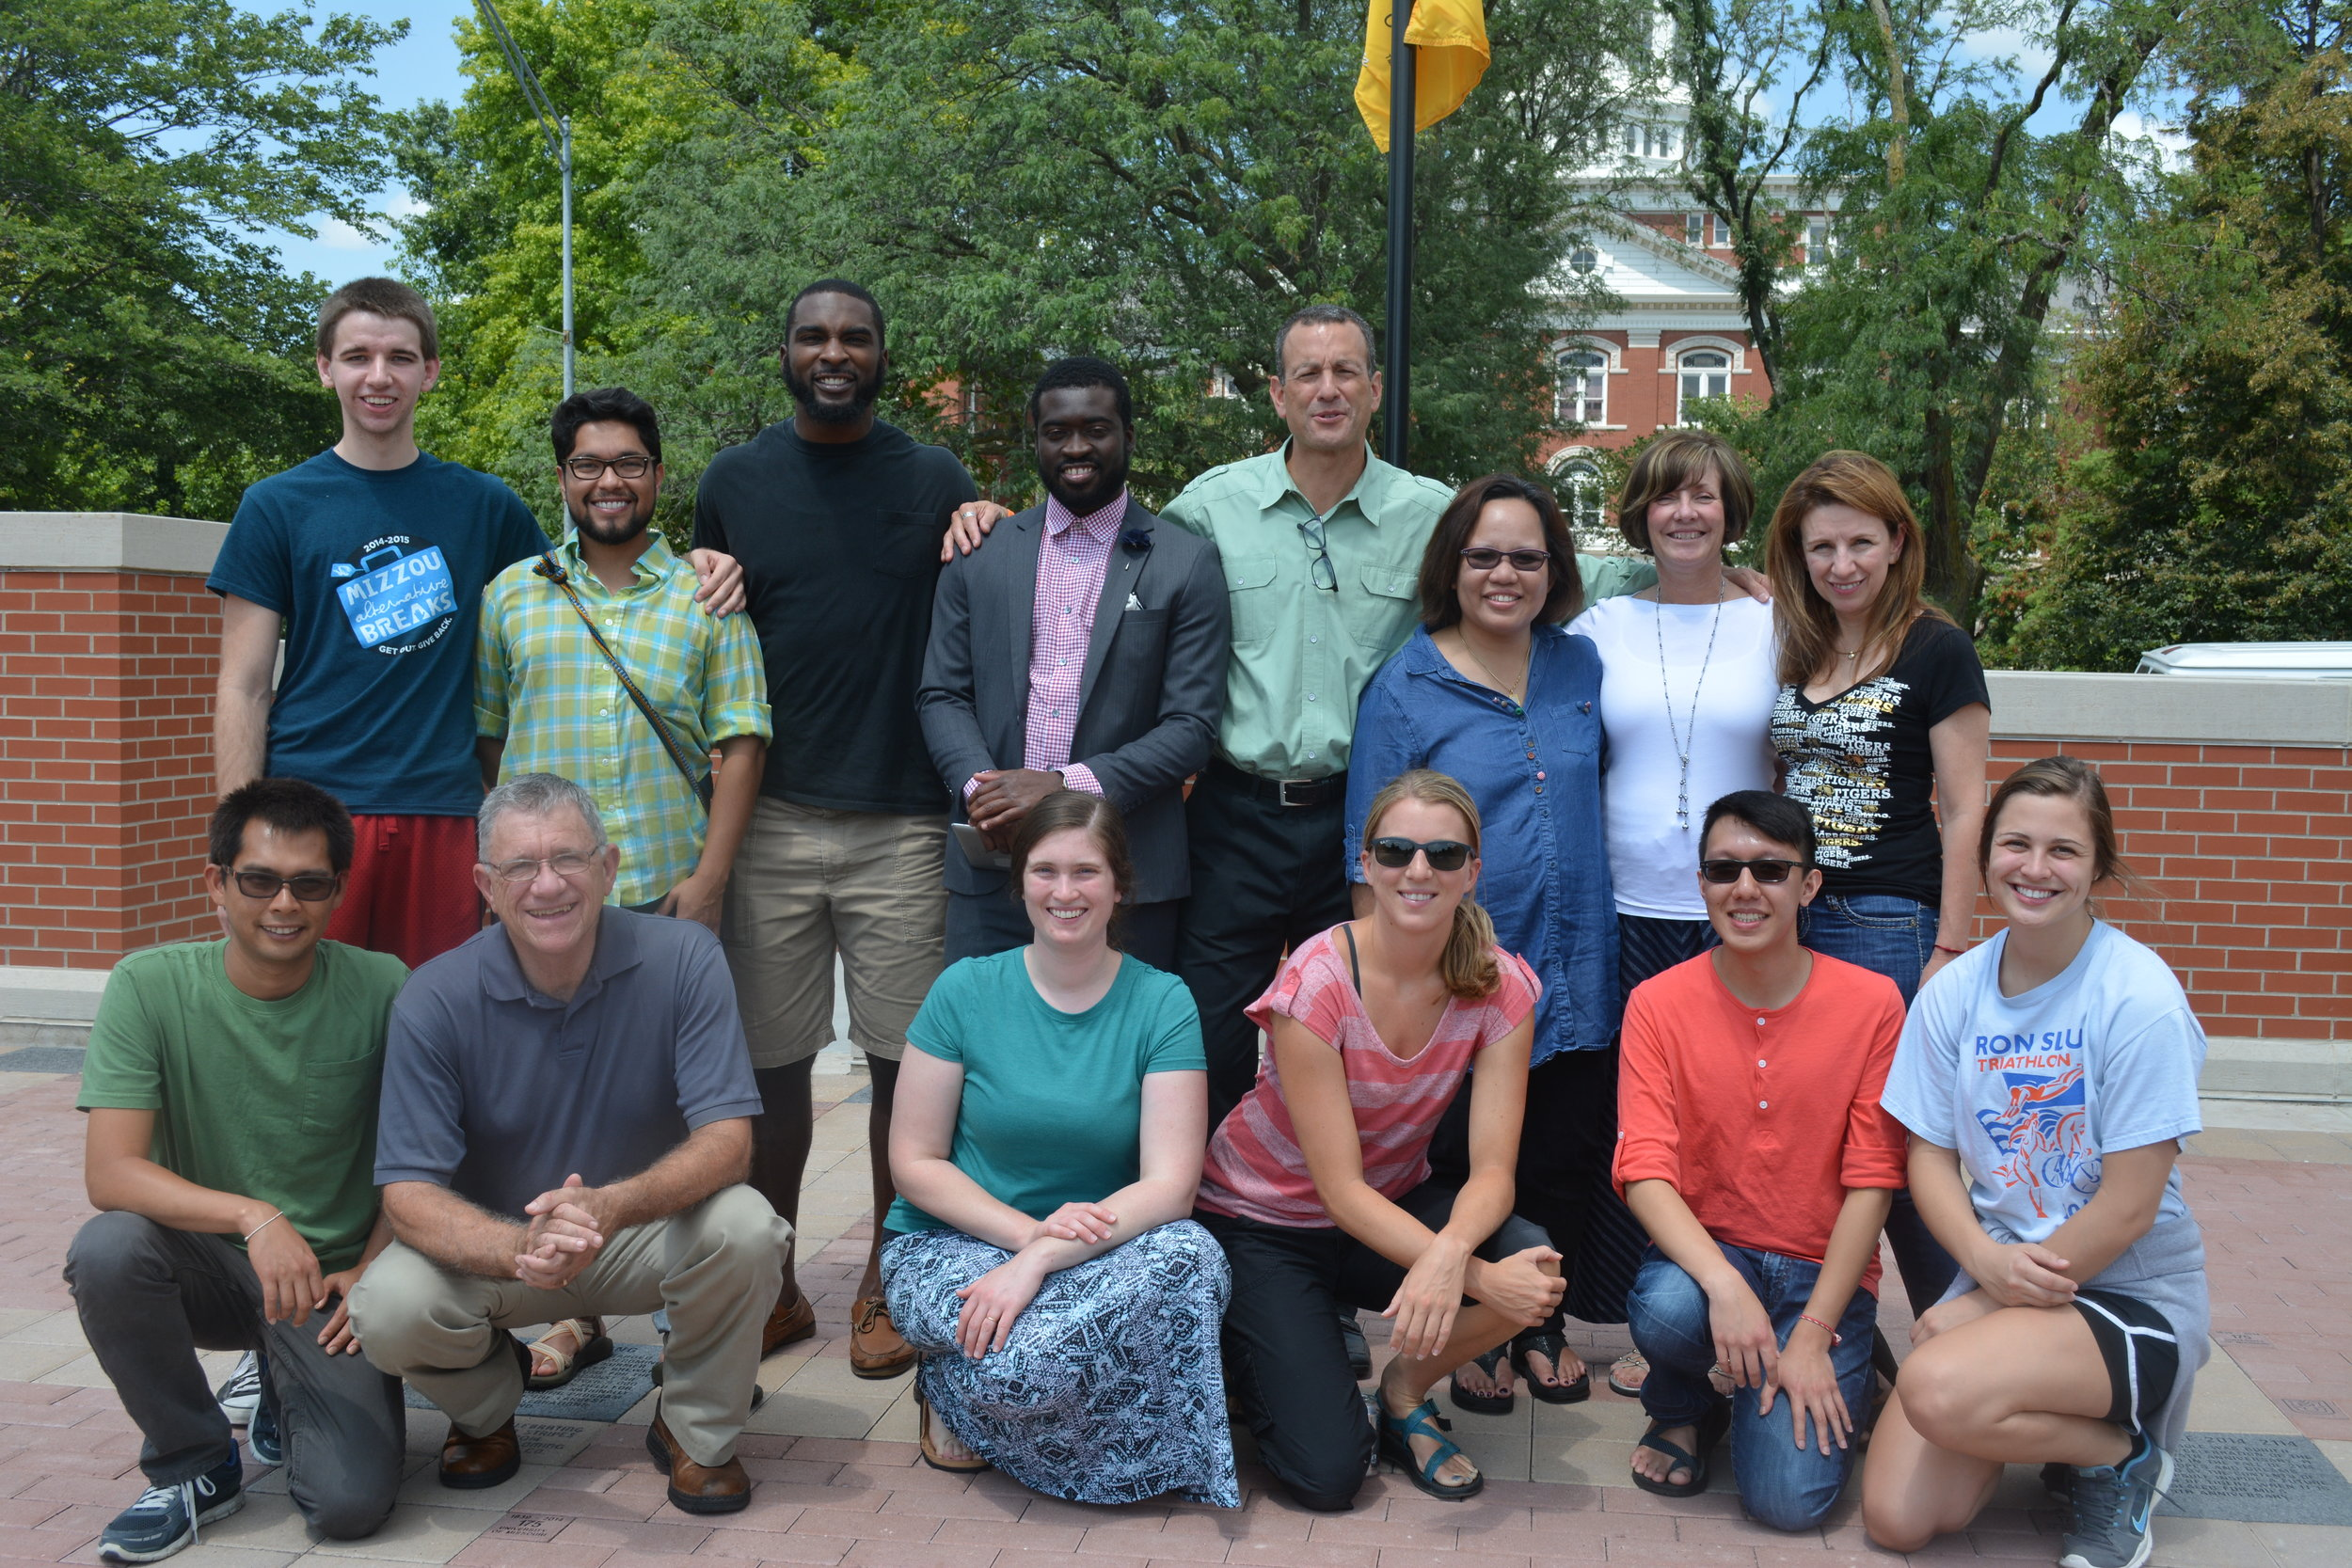 Group photo of workshop participants at the University of Missouri (faculty, staff, students).